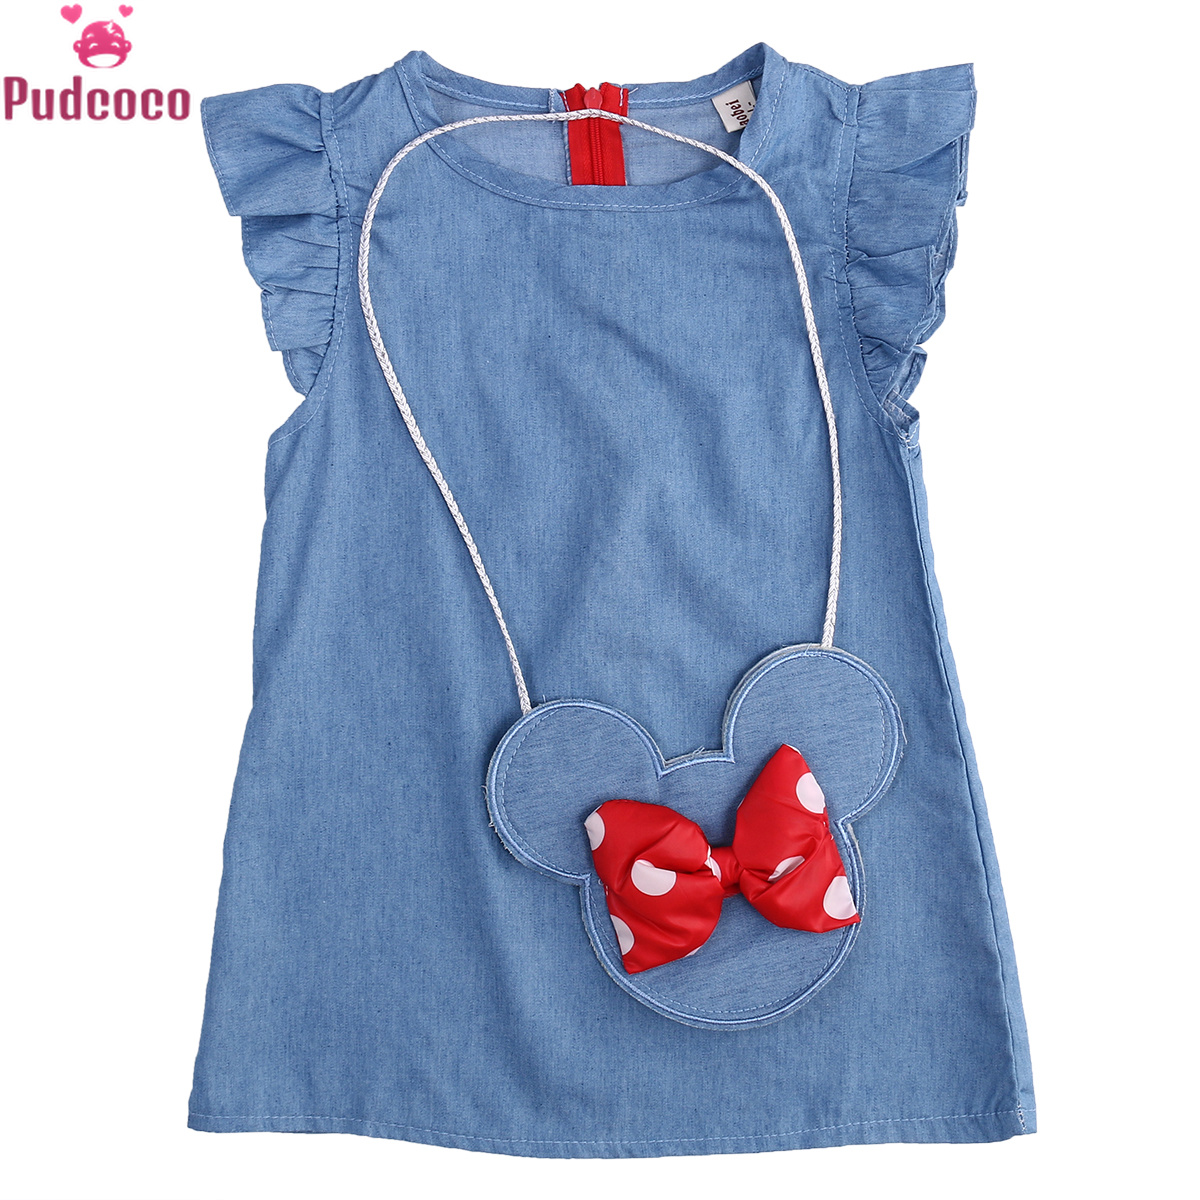 2020 Kids Baby Girl Dress Minnie Mouse Bag +Demin Flying Sleeves Dress Gown Party Dress Sleeveless Clothes Girls Ruffle Outfits